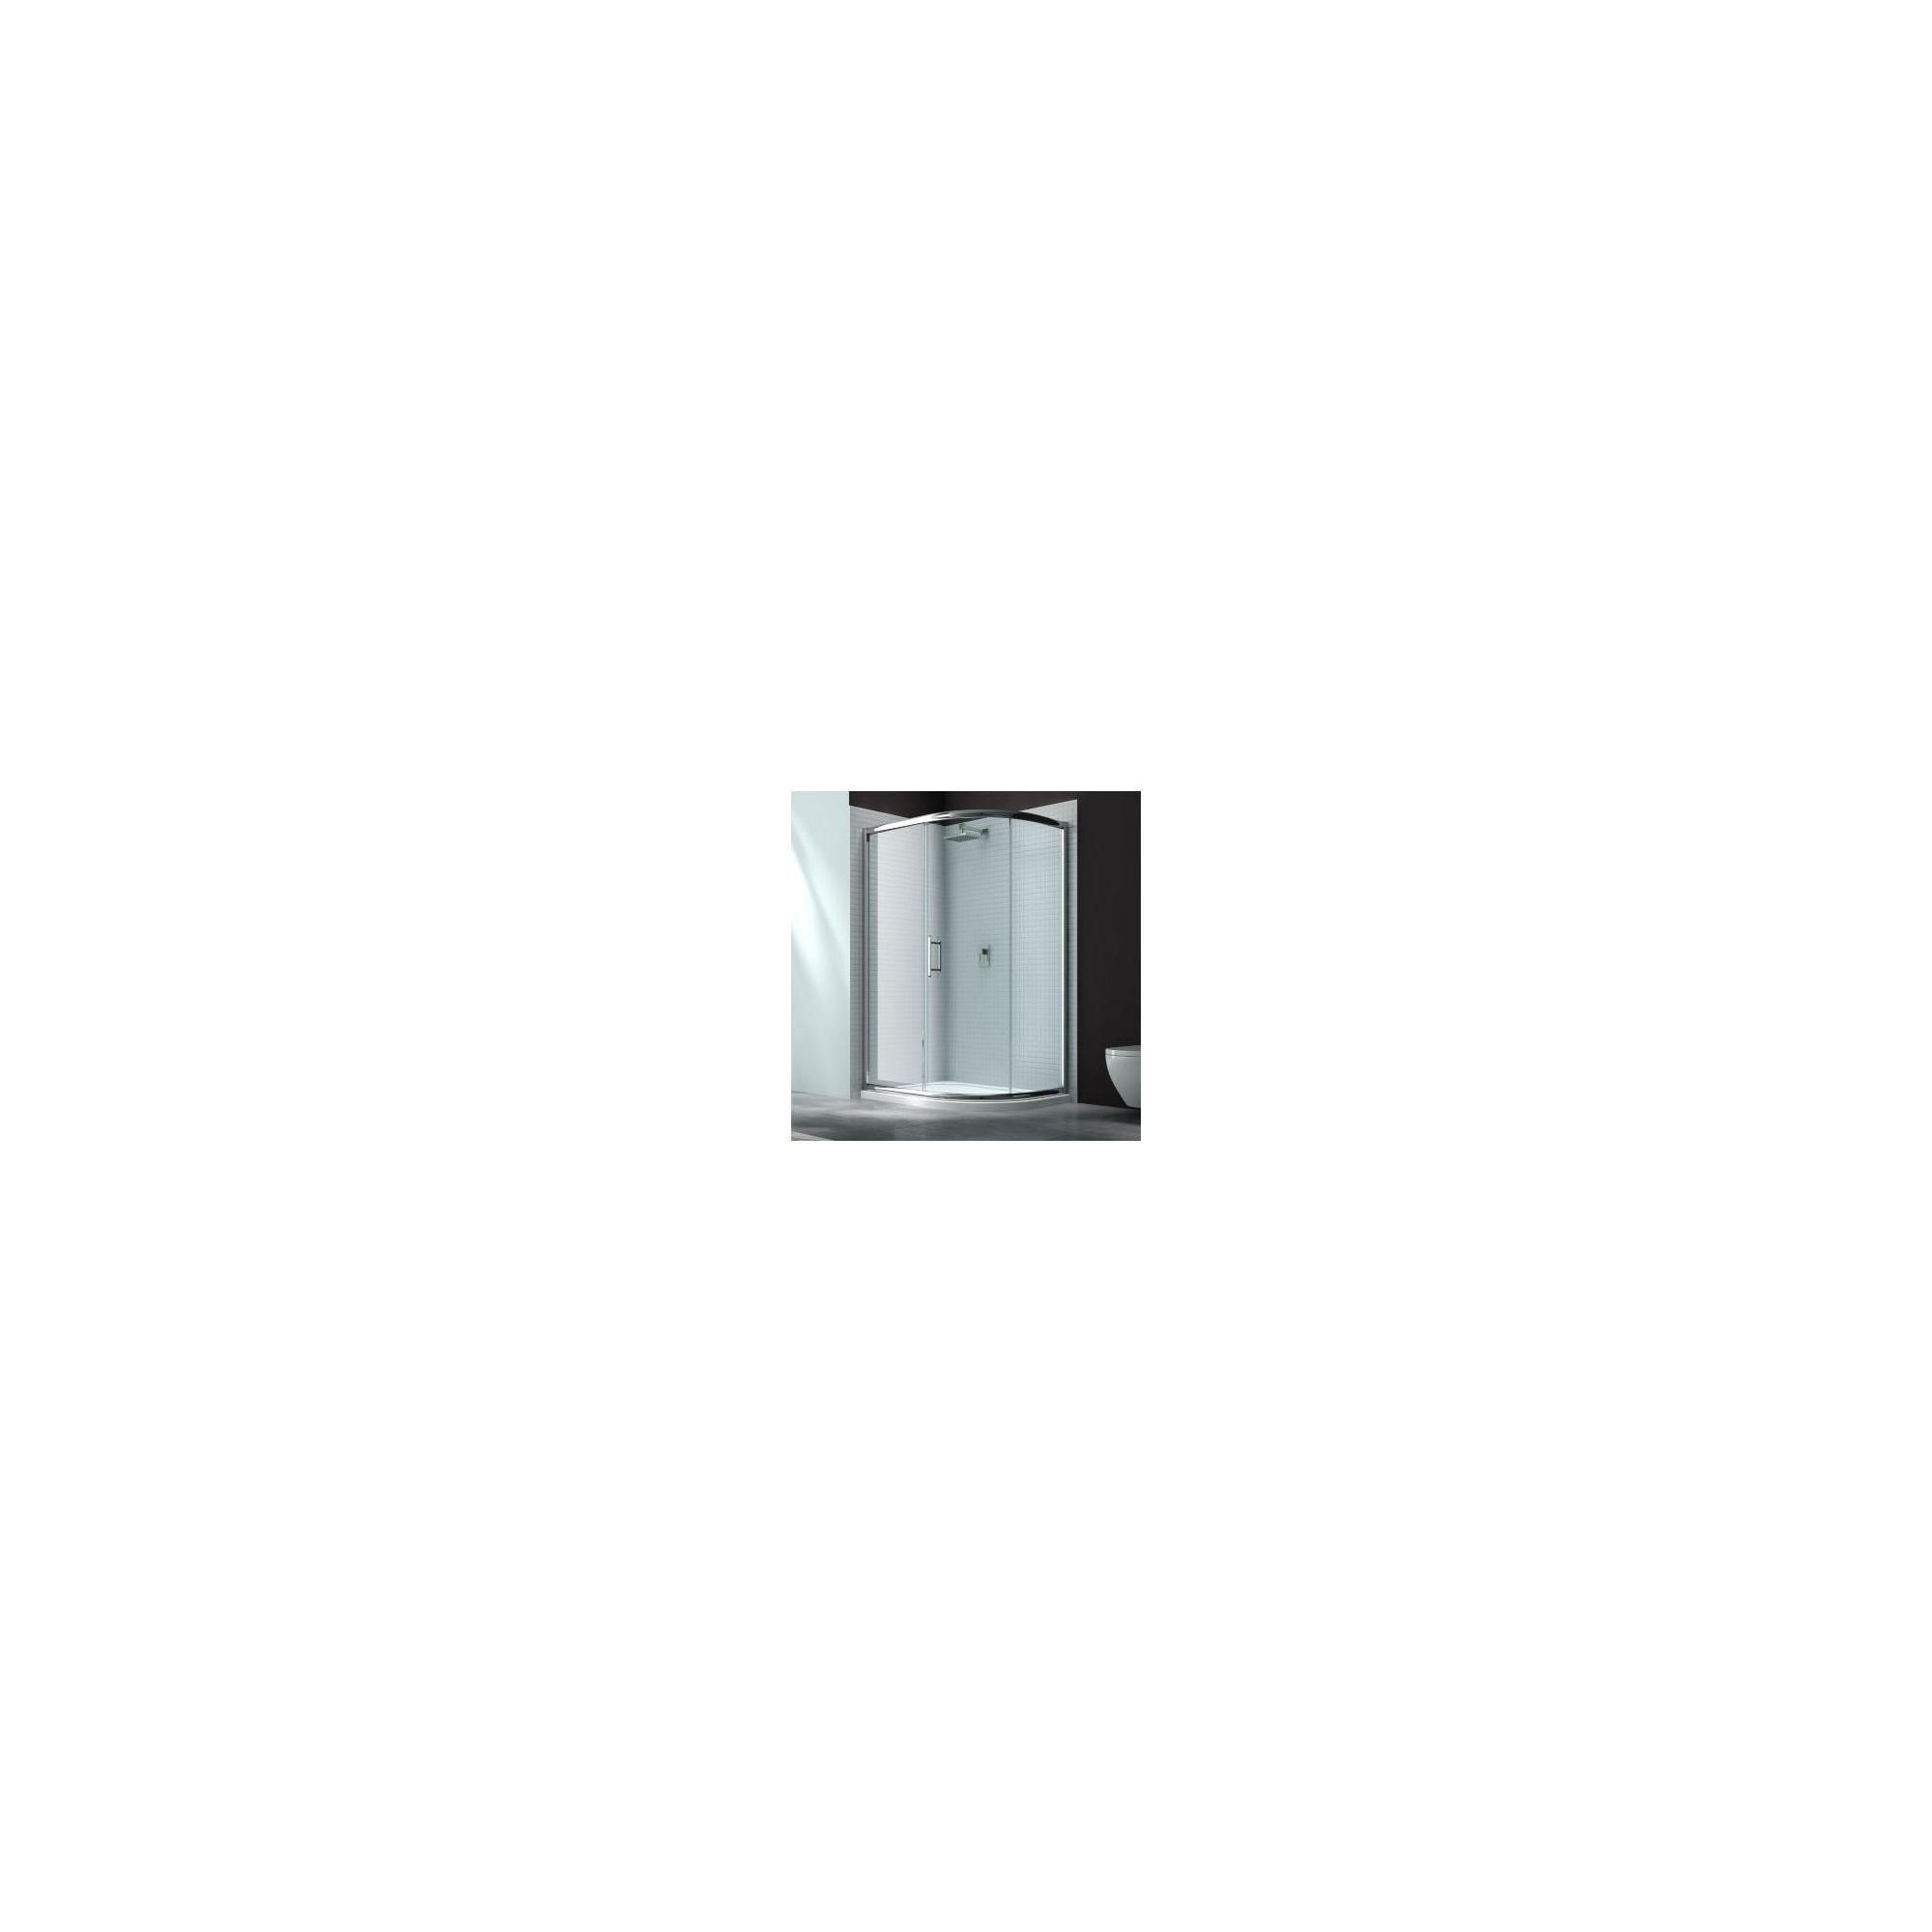 Merlyn Series 6 Offset Quadrant Shower Door, 1200mm x 900mm, Chrome Frame, 6mm Glass at Tesco Direct